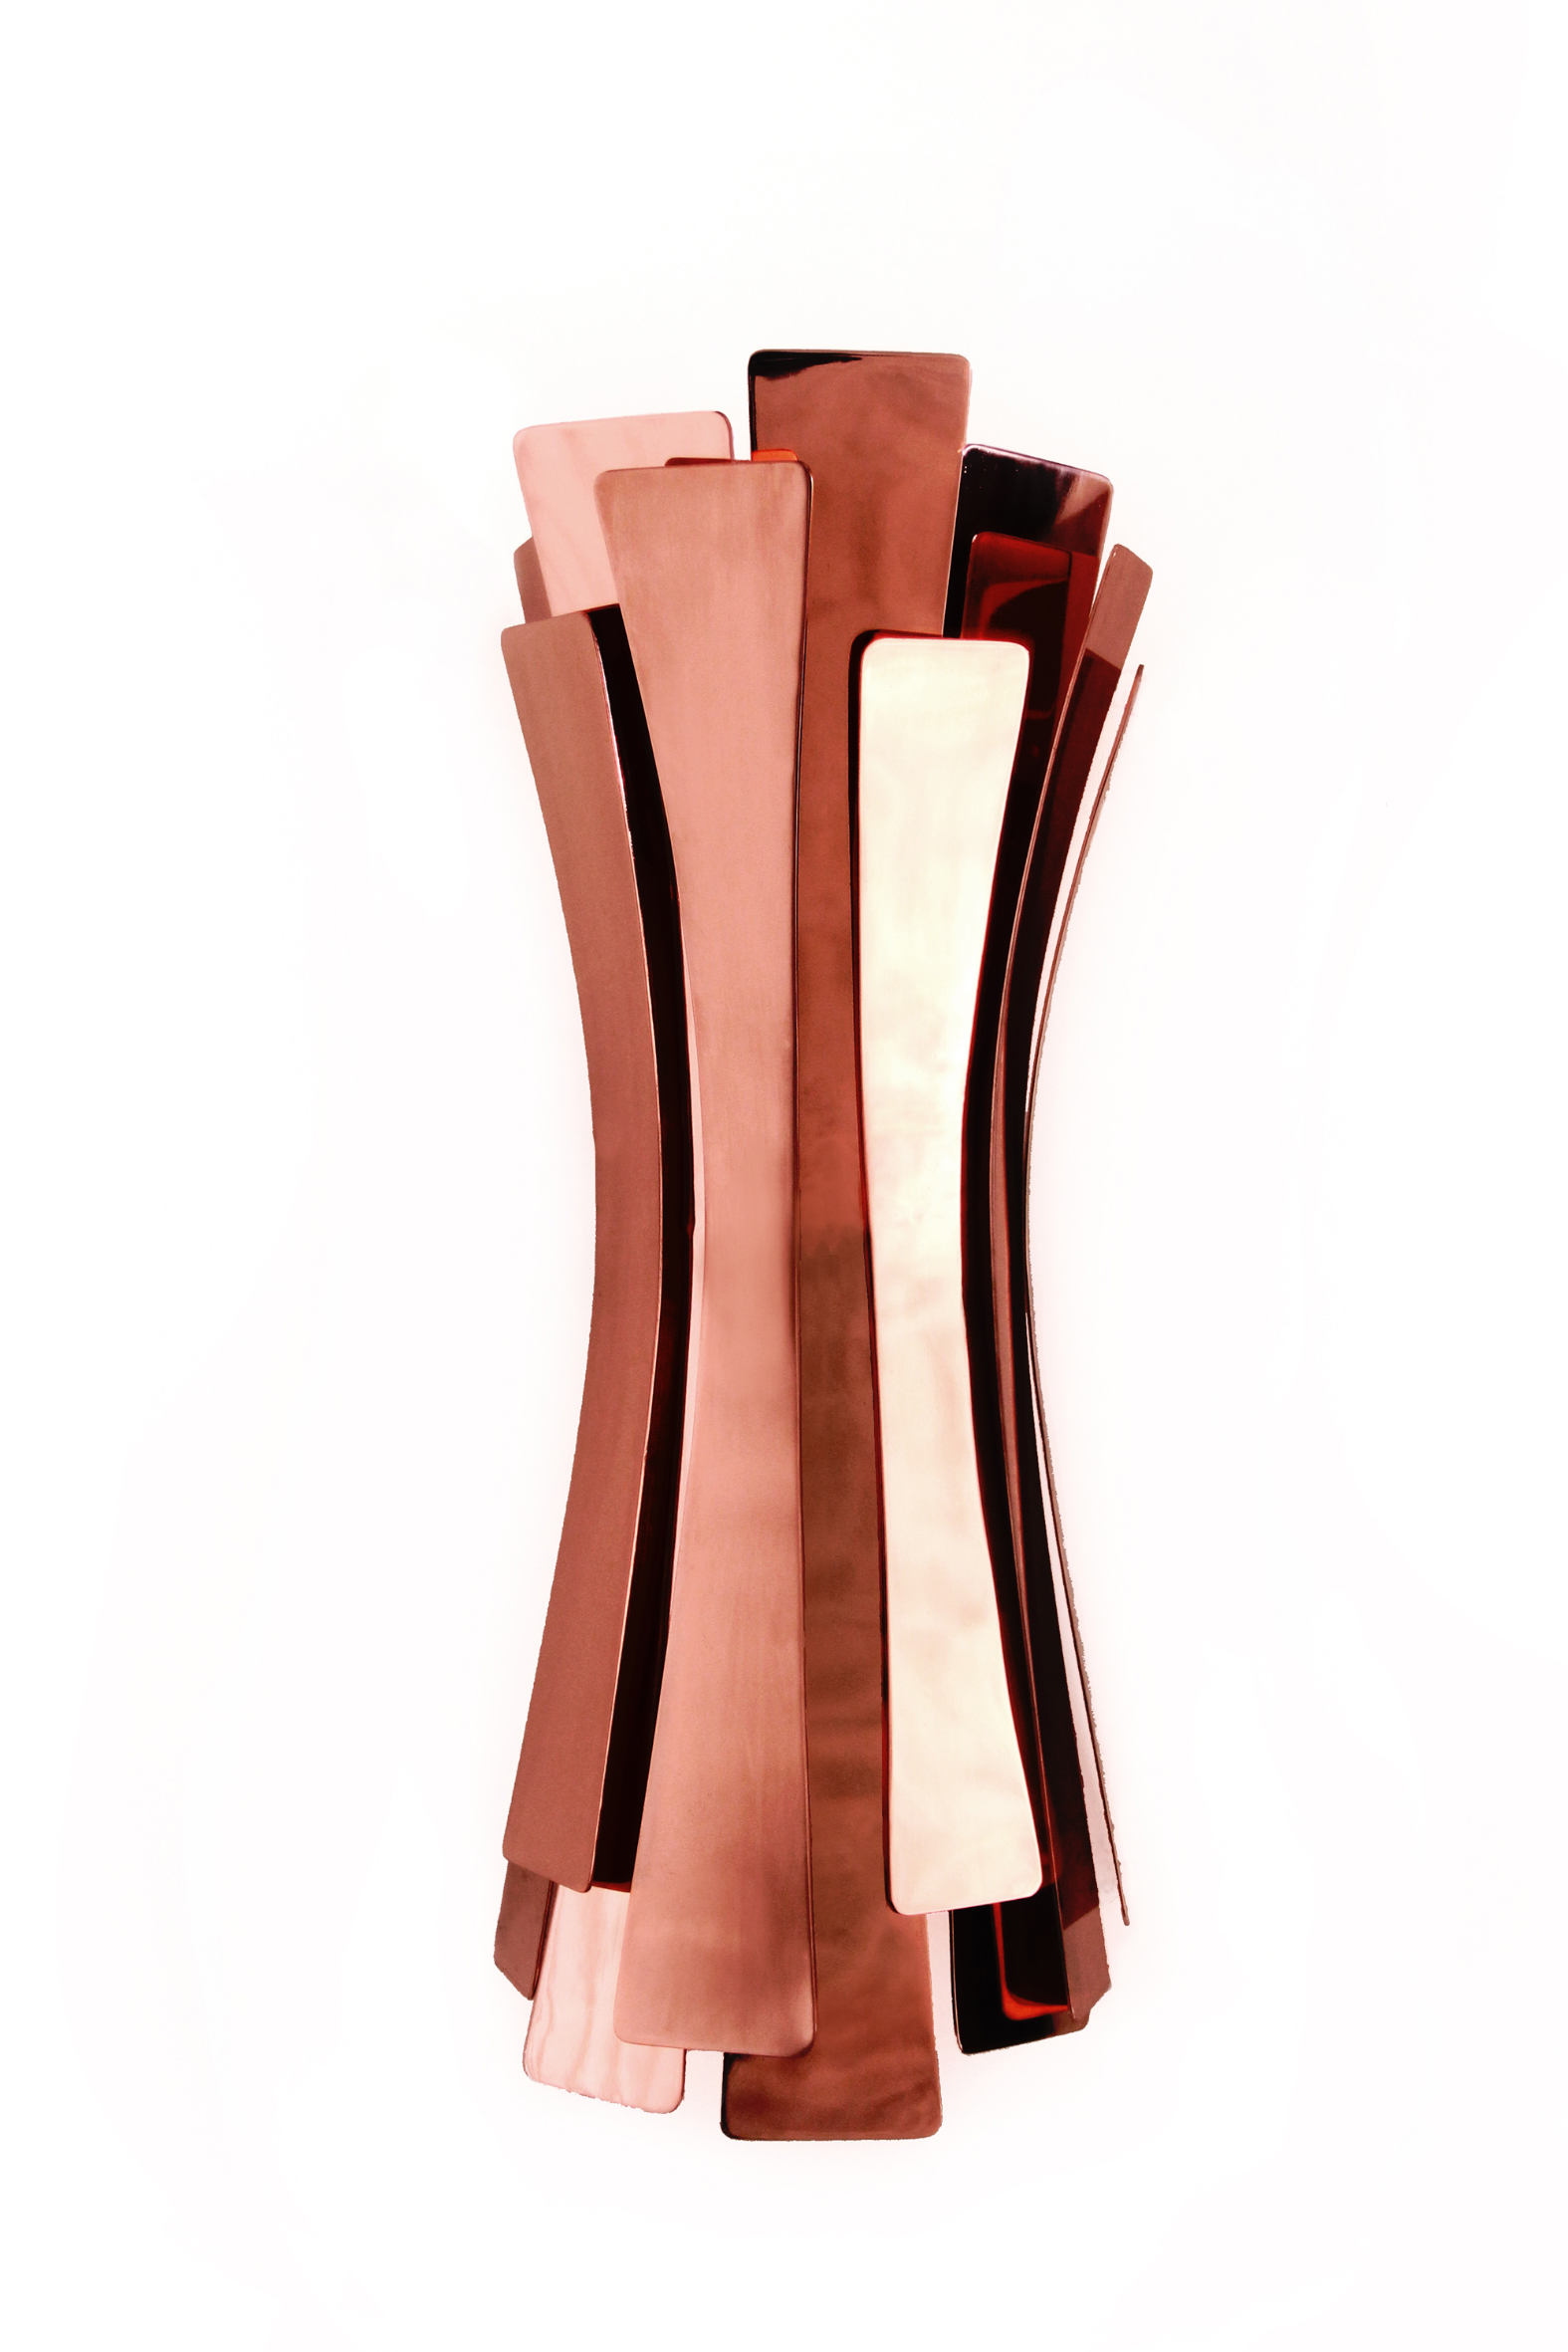 Metal Trend Start Your Home Renovation with Copper Home Accessories 5